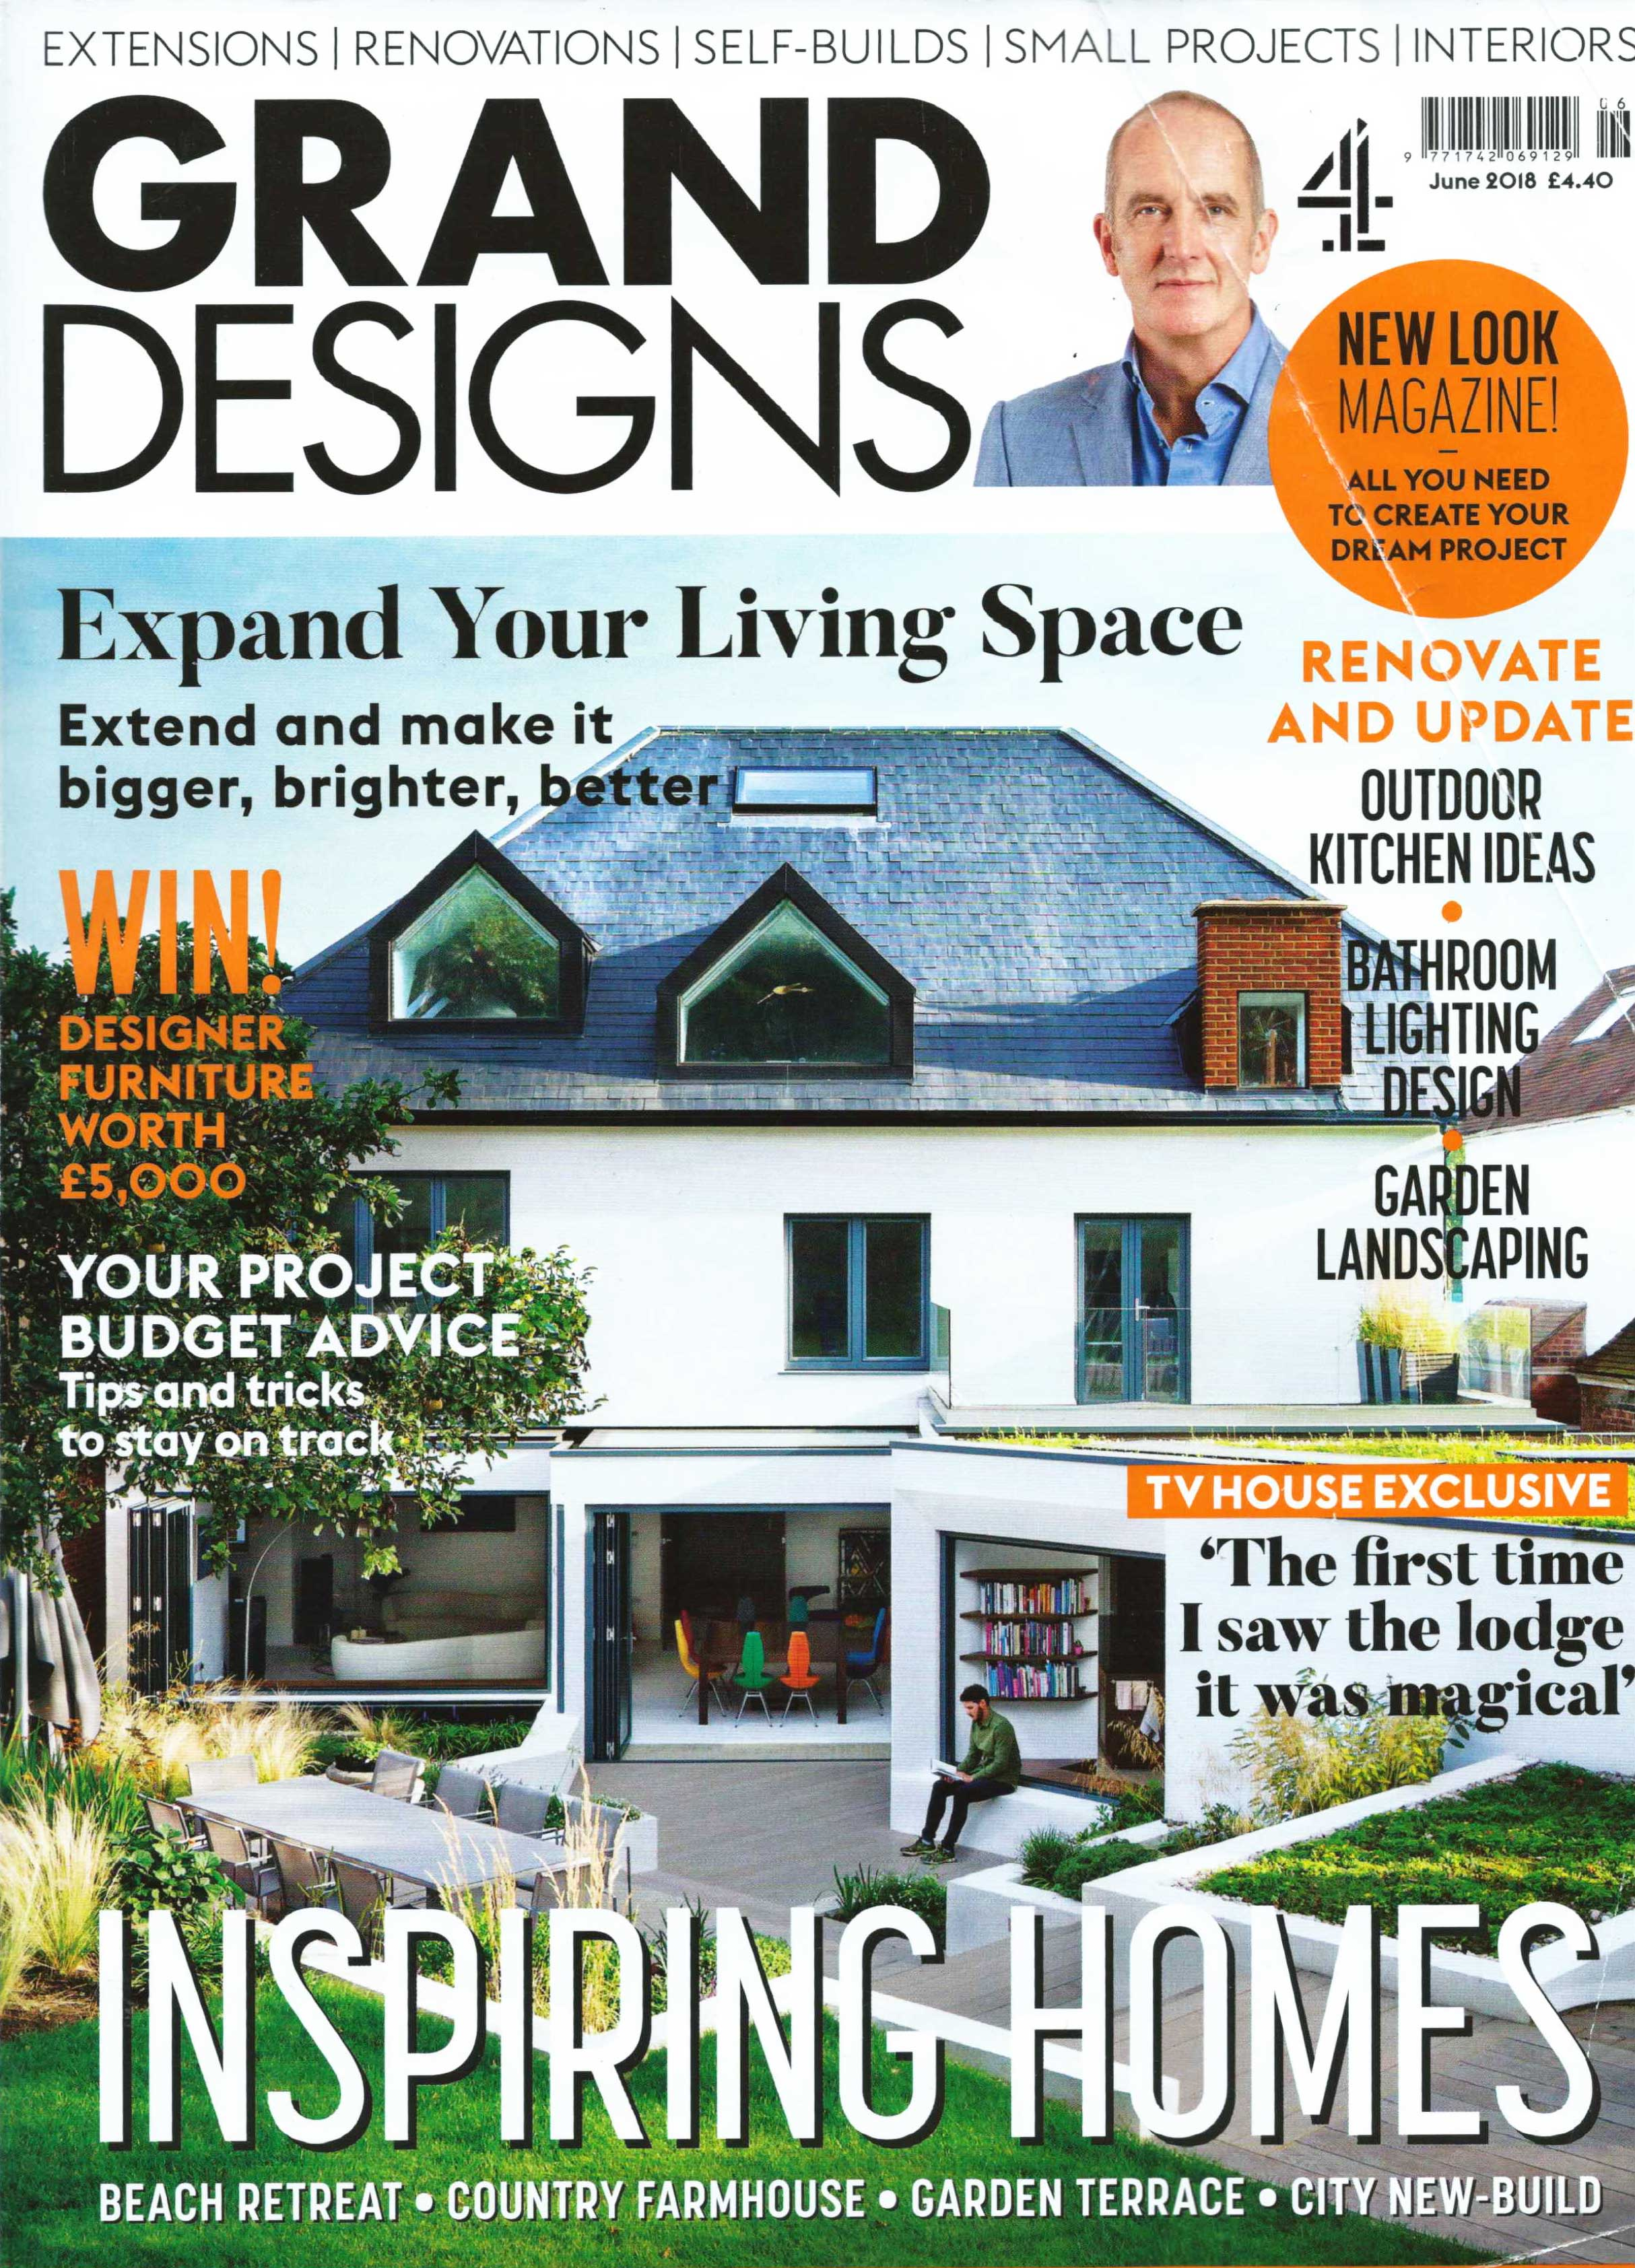 Grand Designs - June 2018 issue